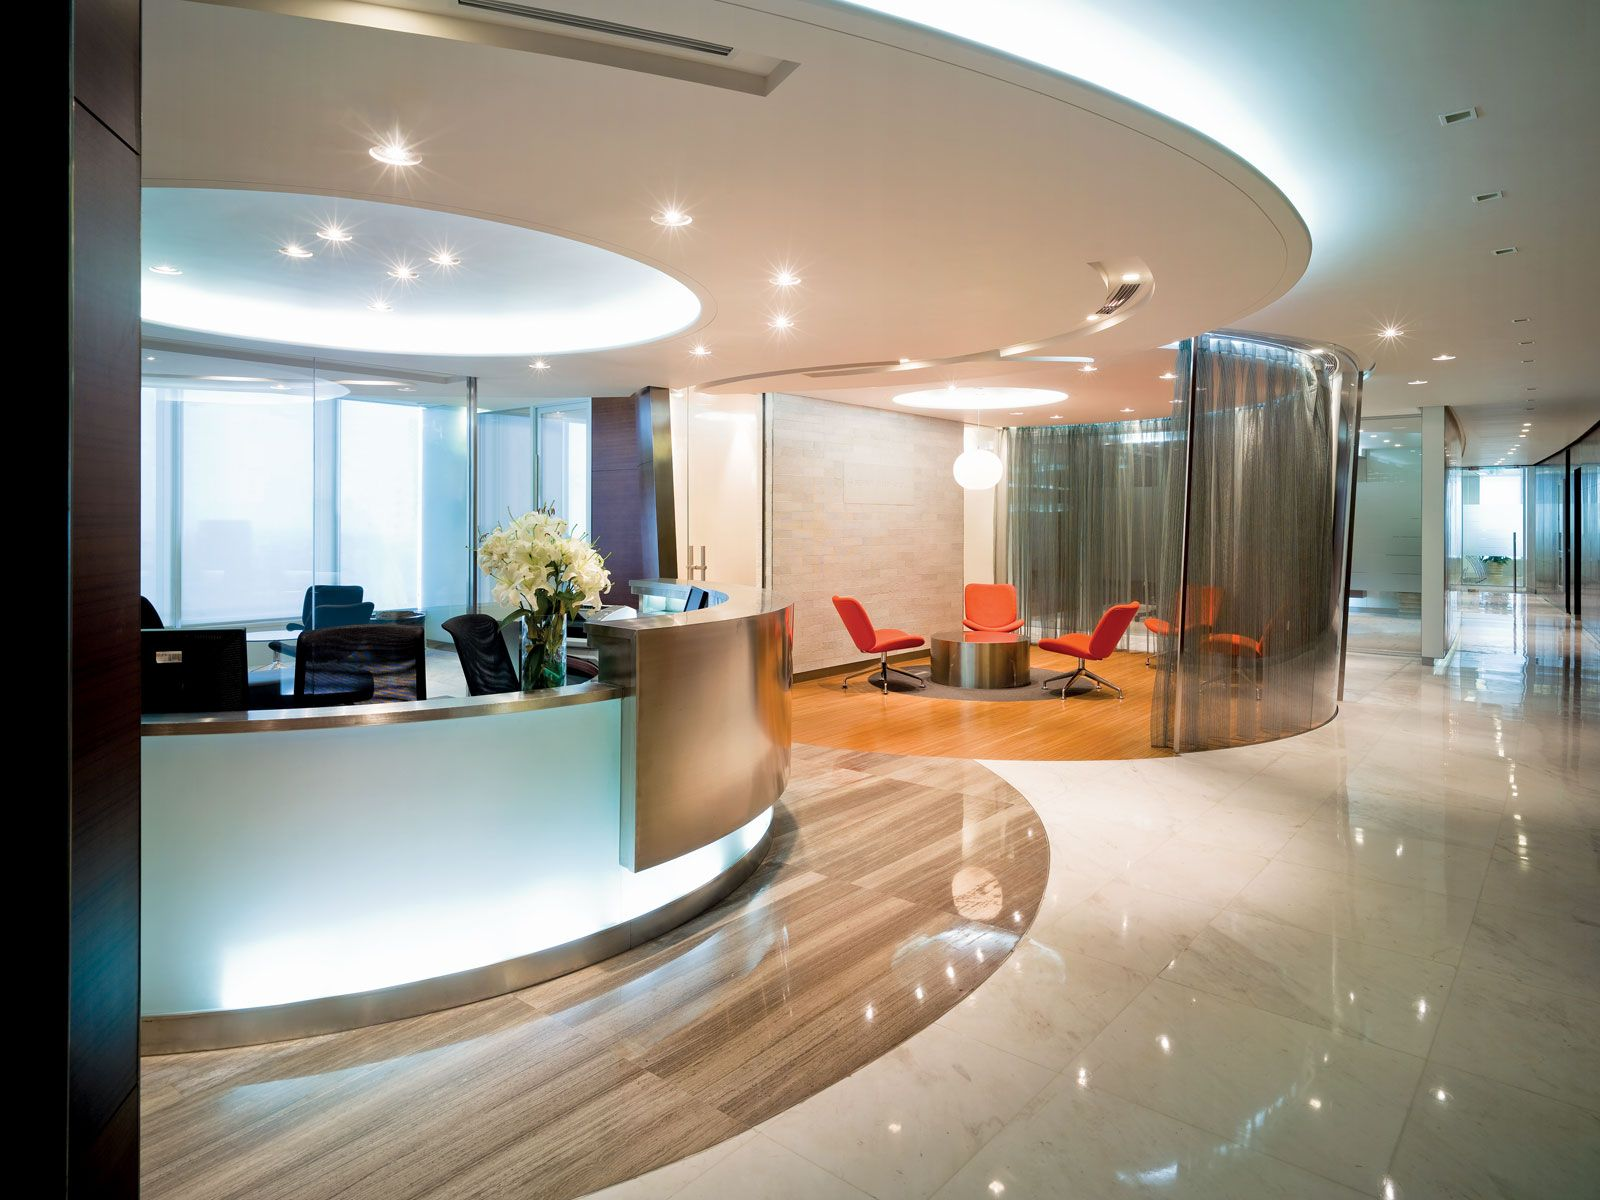 interior design ideas for office space - 1000+ images about Waiting rooms on Pinterest Waiting rooms ...